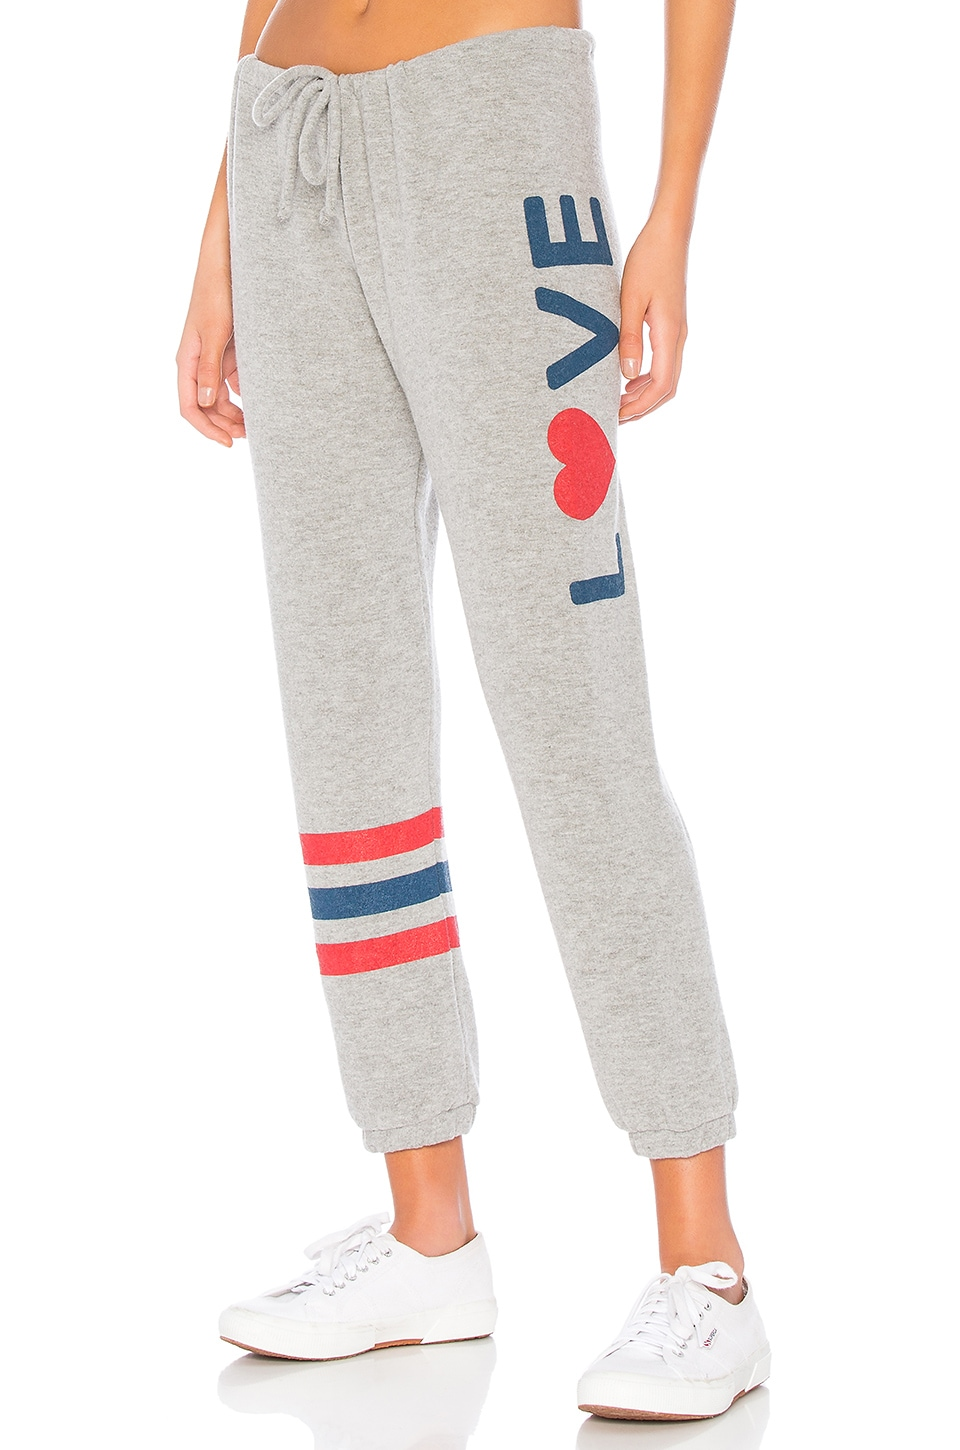 Chaser Love Drawstring Pant in Heather Grey